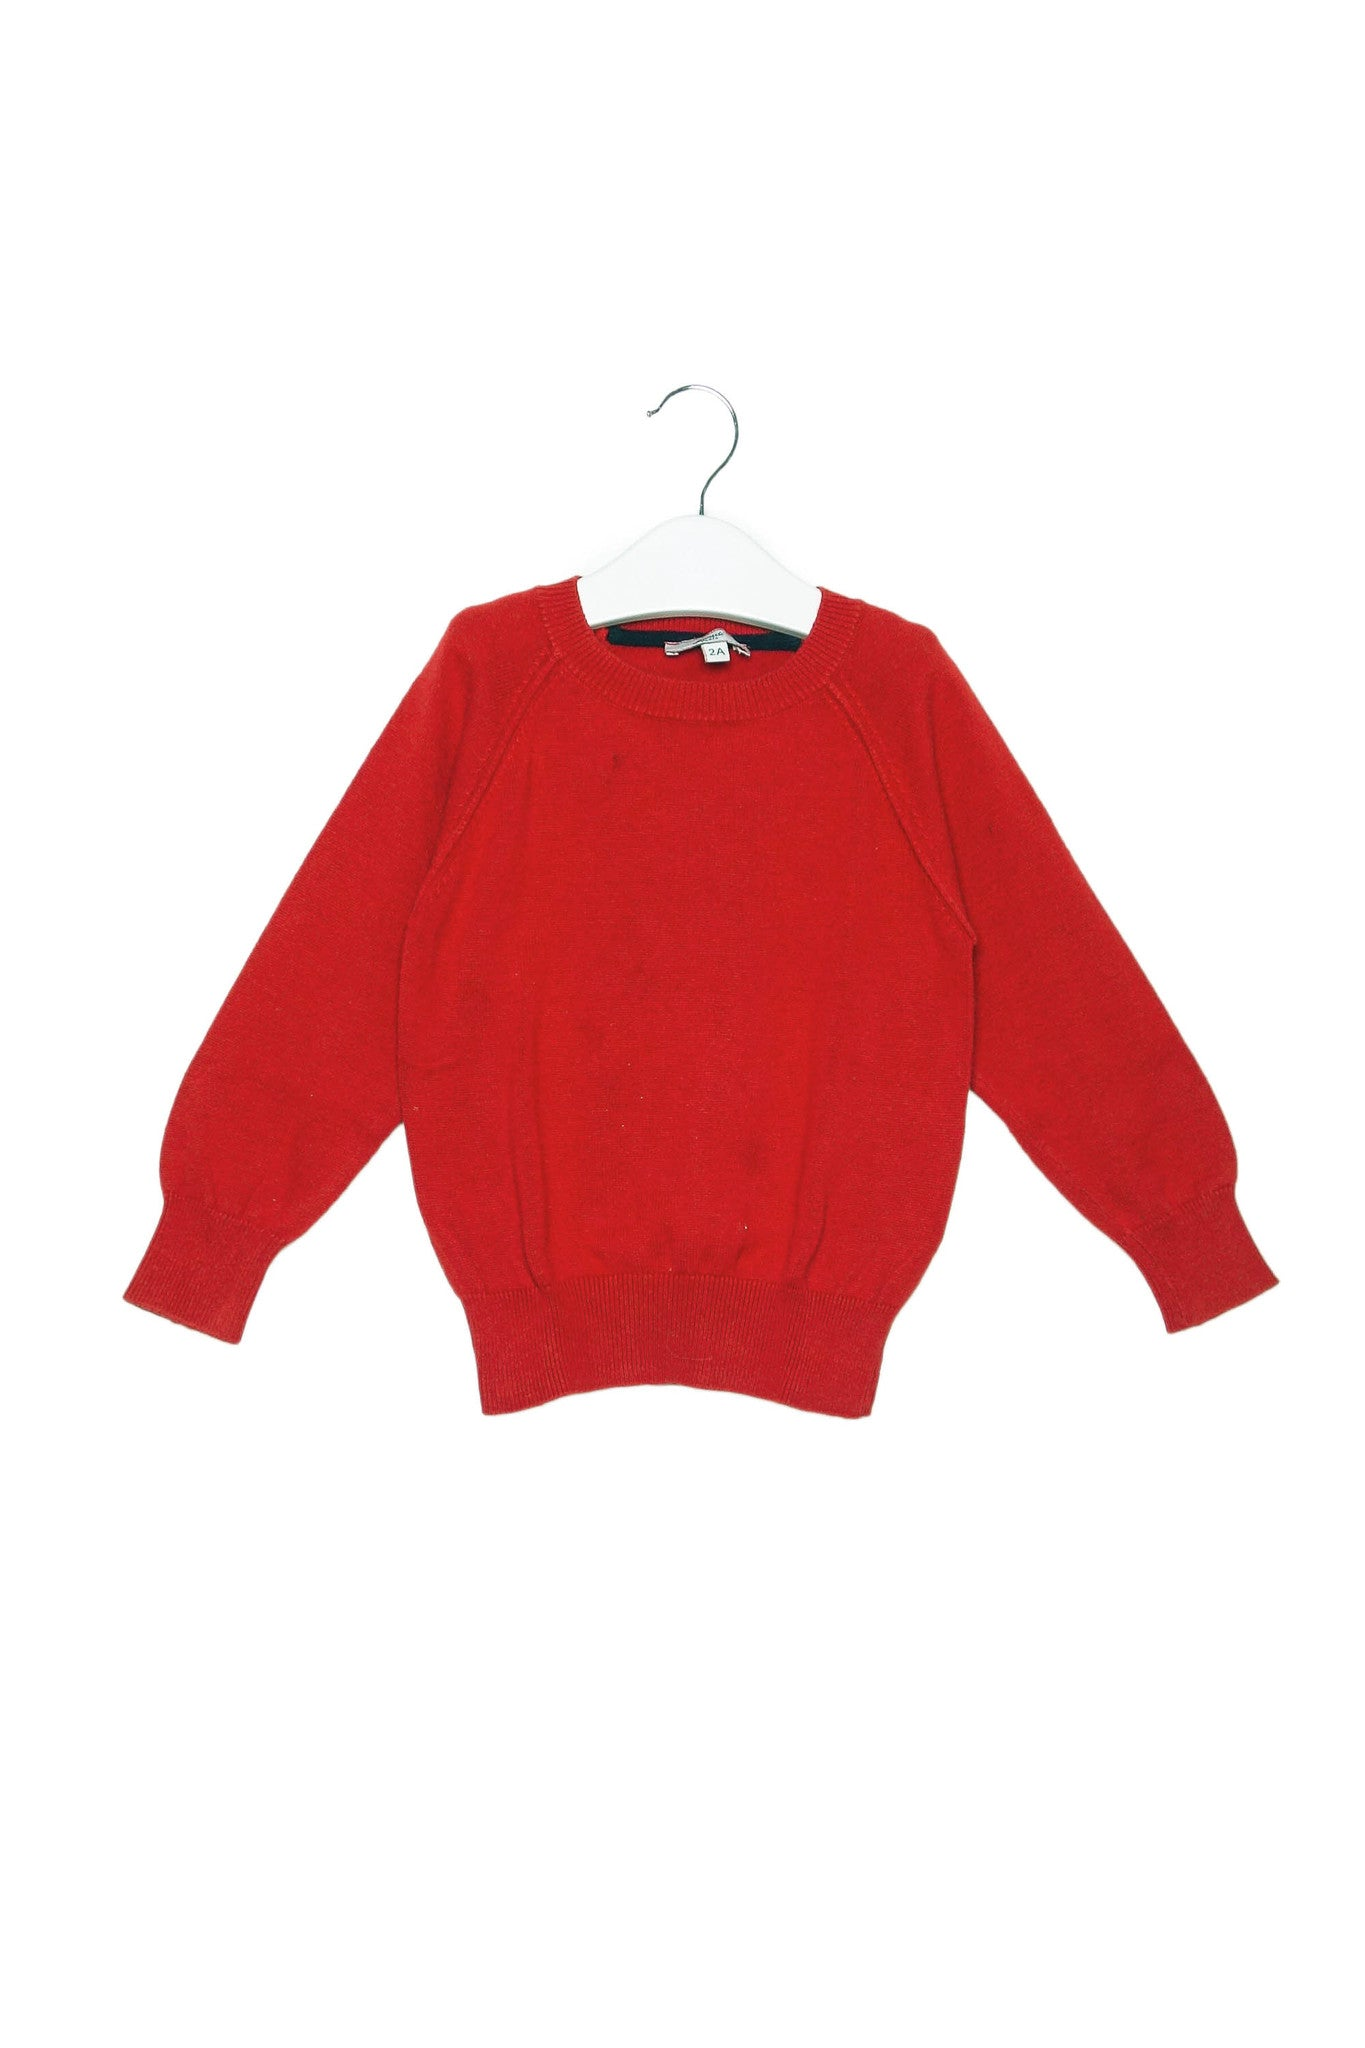 10002827 Jacadi Kids~Sweater 2T at Retykle